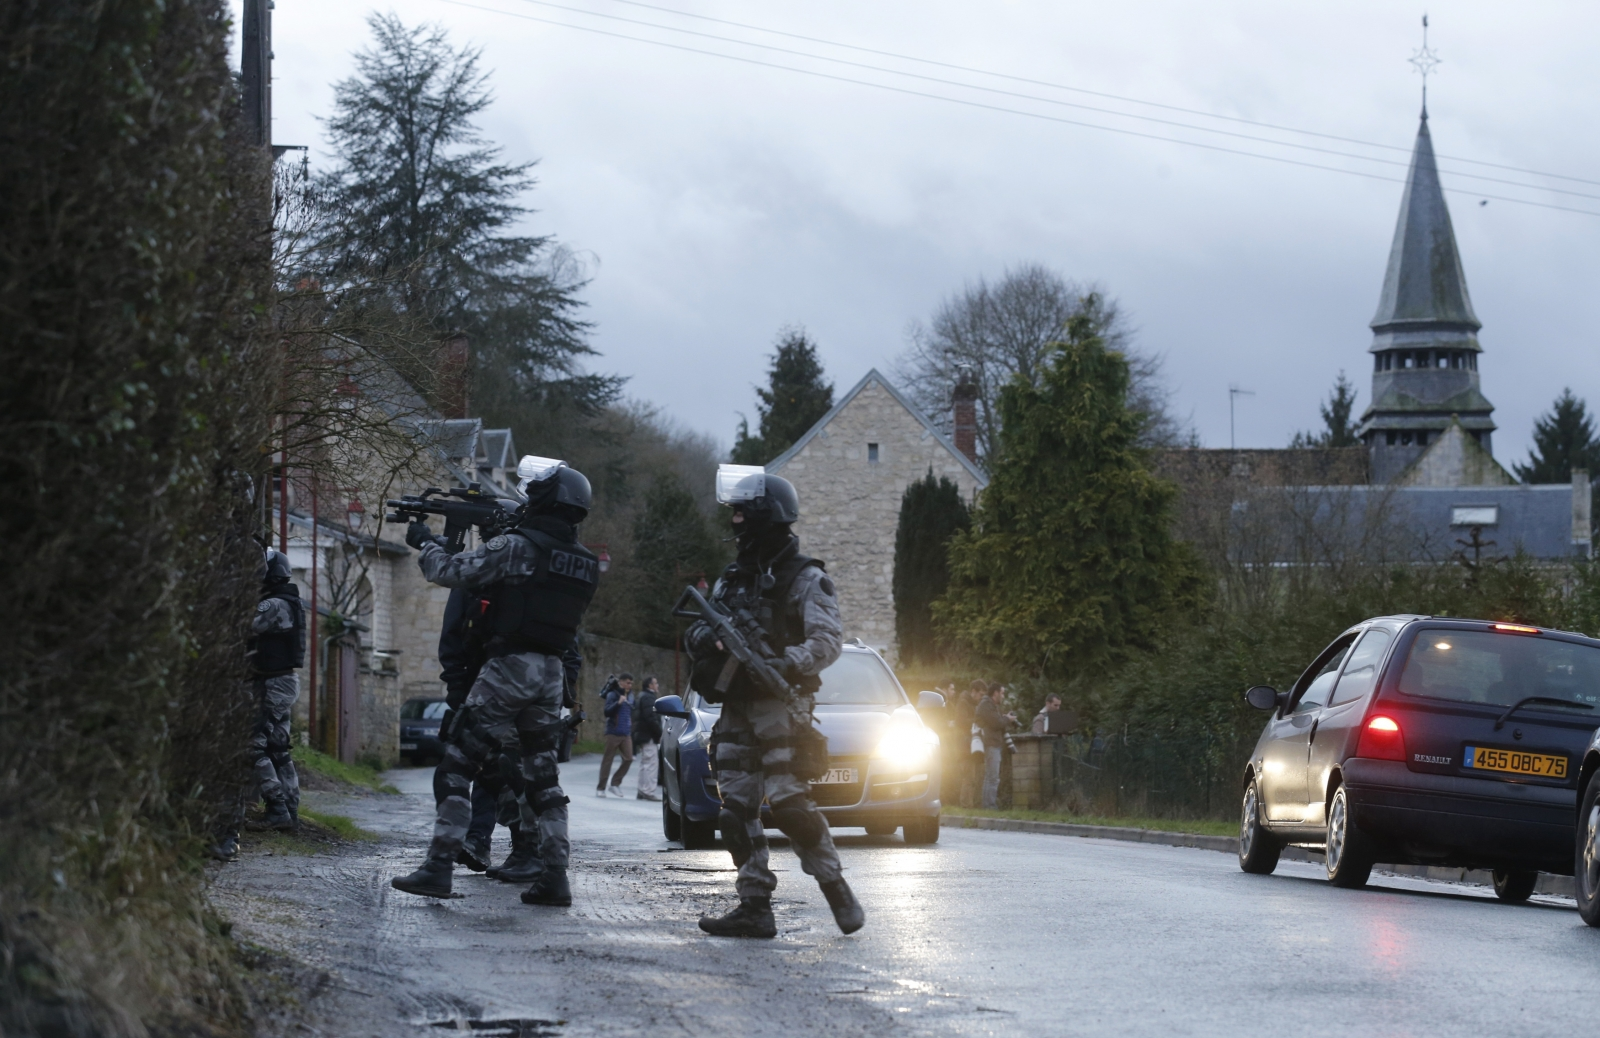 Charlie Hebdo Paris shooting: Shots fired and 'hostages taken' in Kouachi brothers manhunt